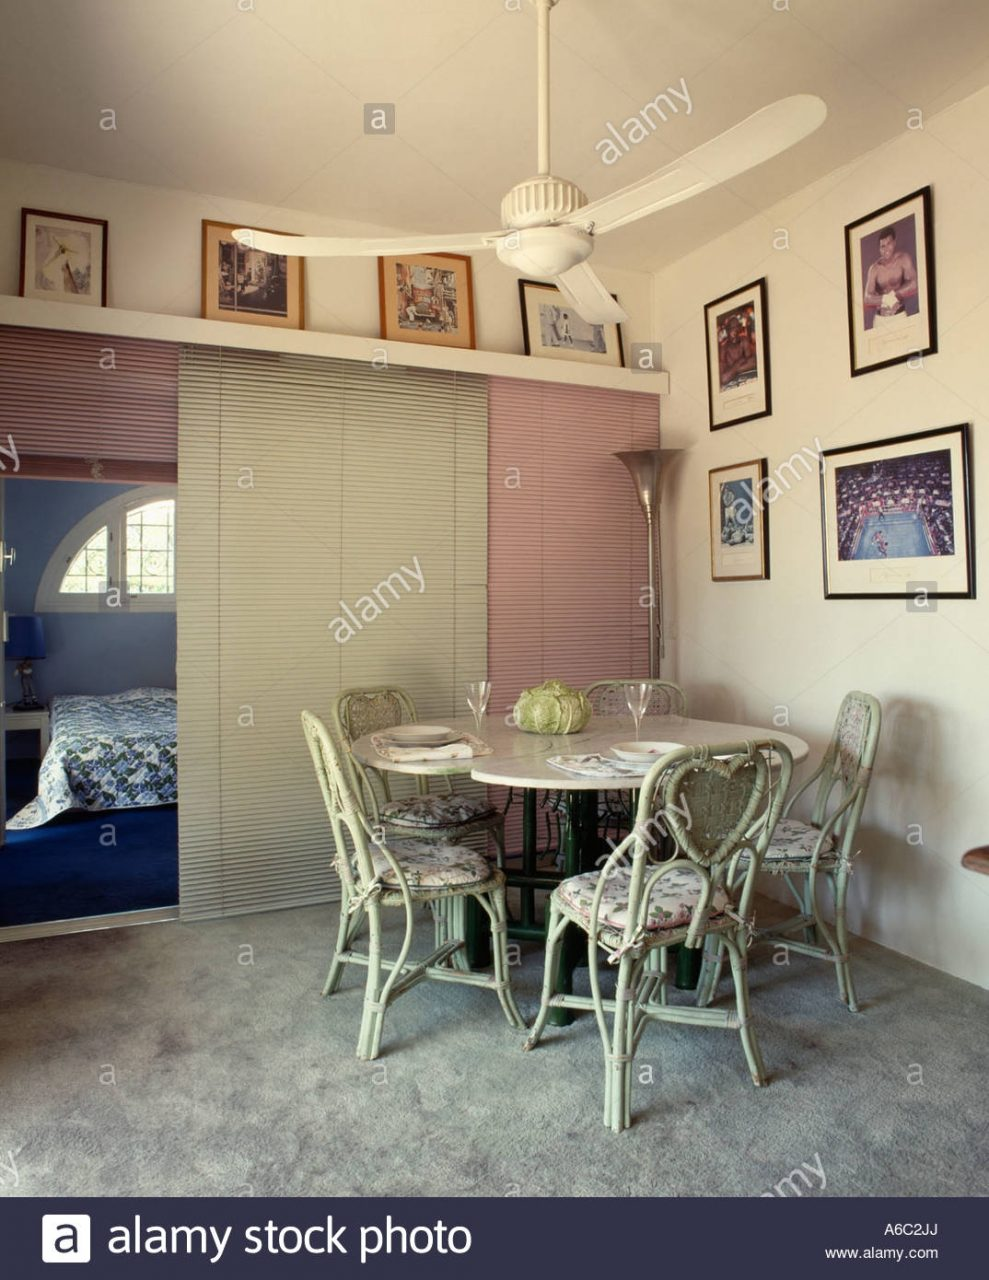 Ceiling Fan Above Circular Table In Dining Room With Pictures On